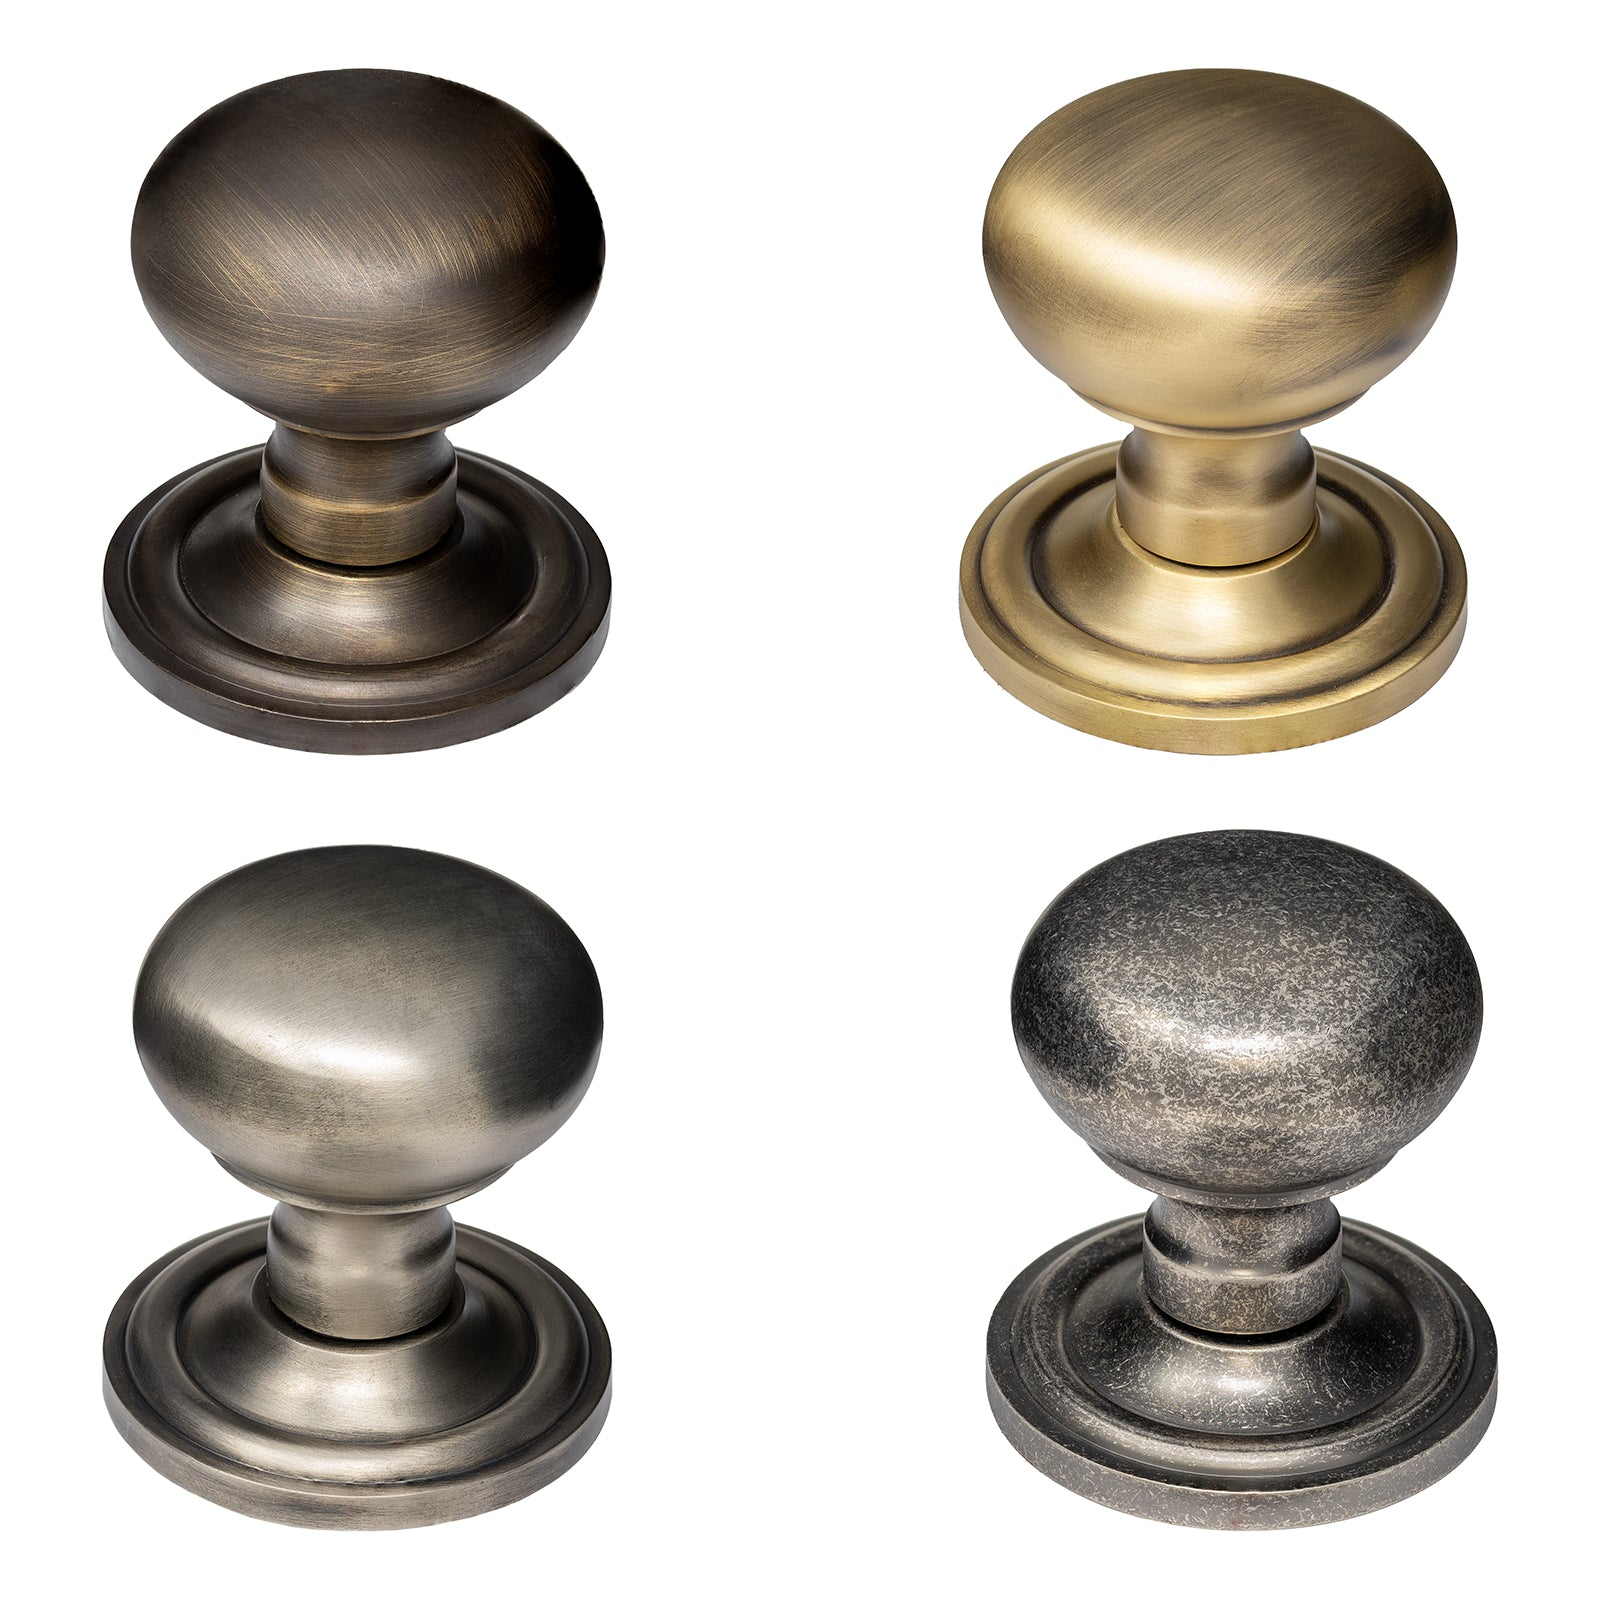 Solid Brass Mushroom Door Knobs Old English Collection